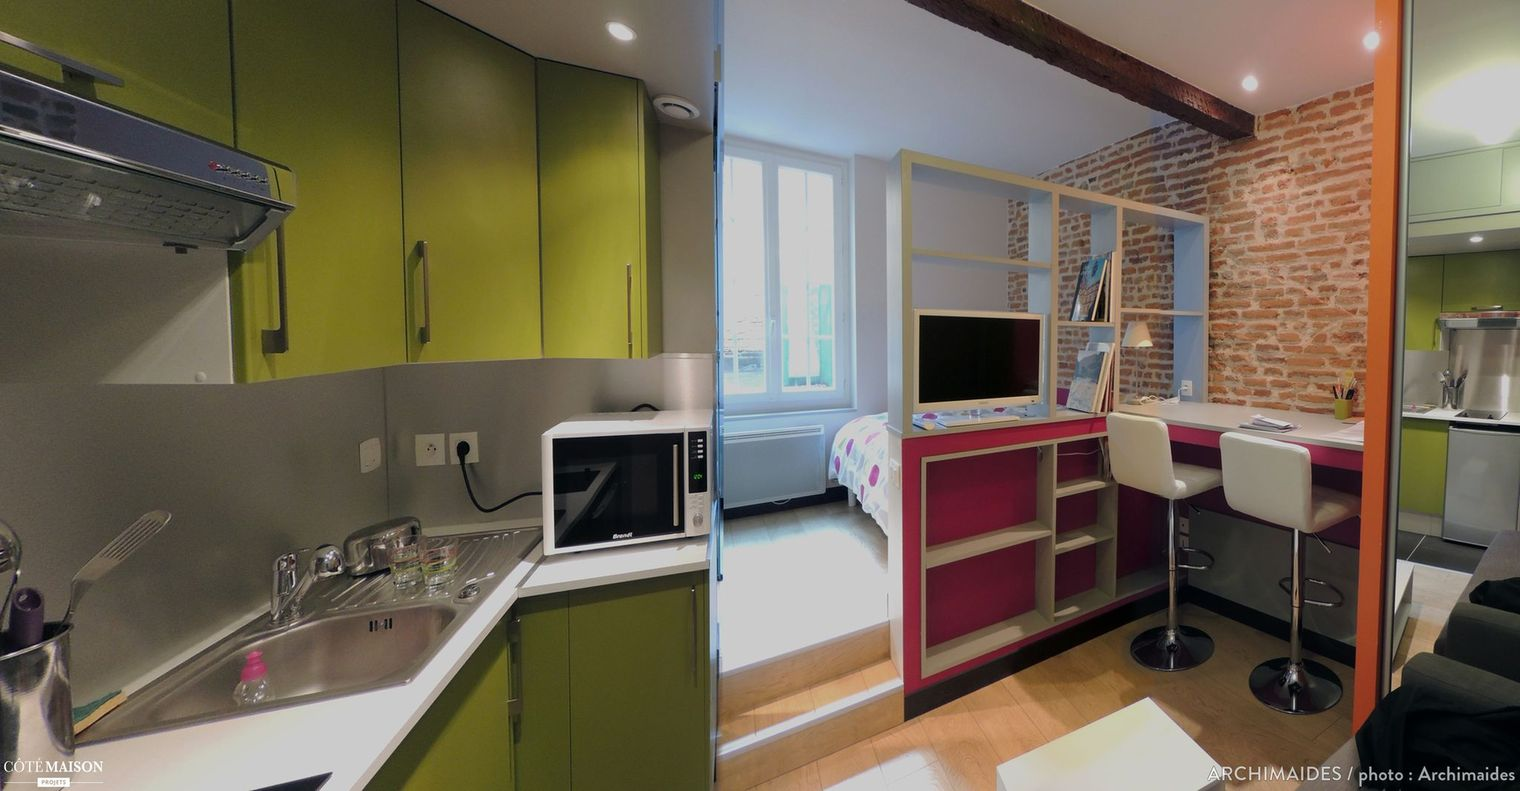 Bts decorateur interieur ecole architecture interieur for Formation decorateur interieur paris